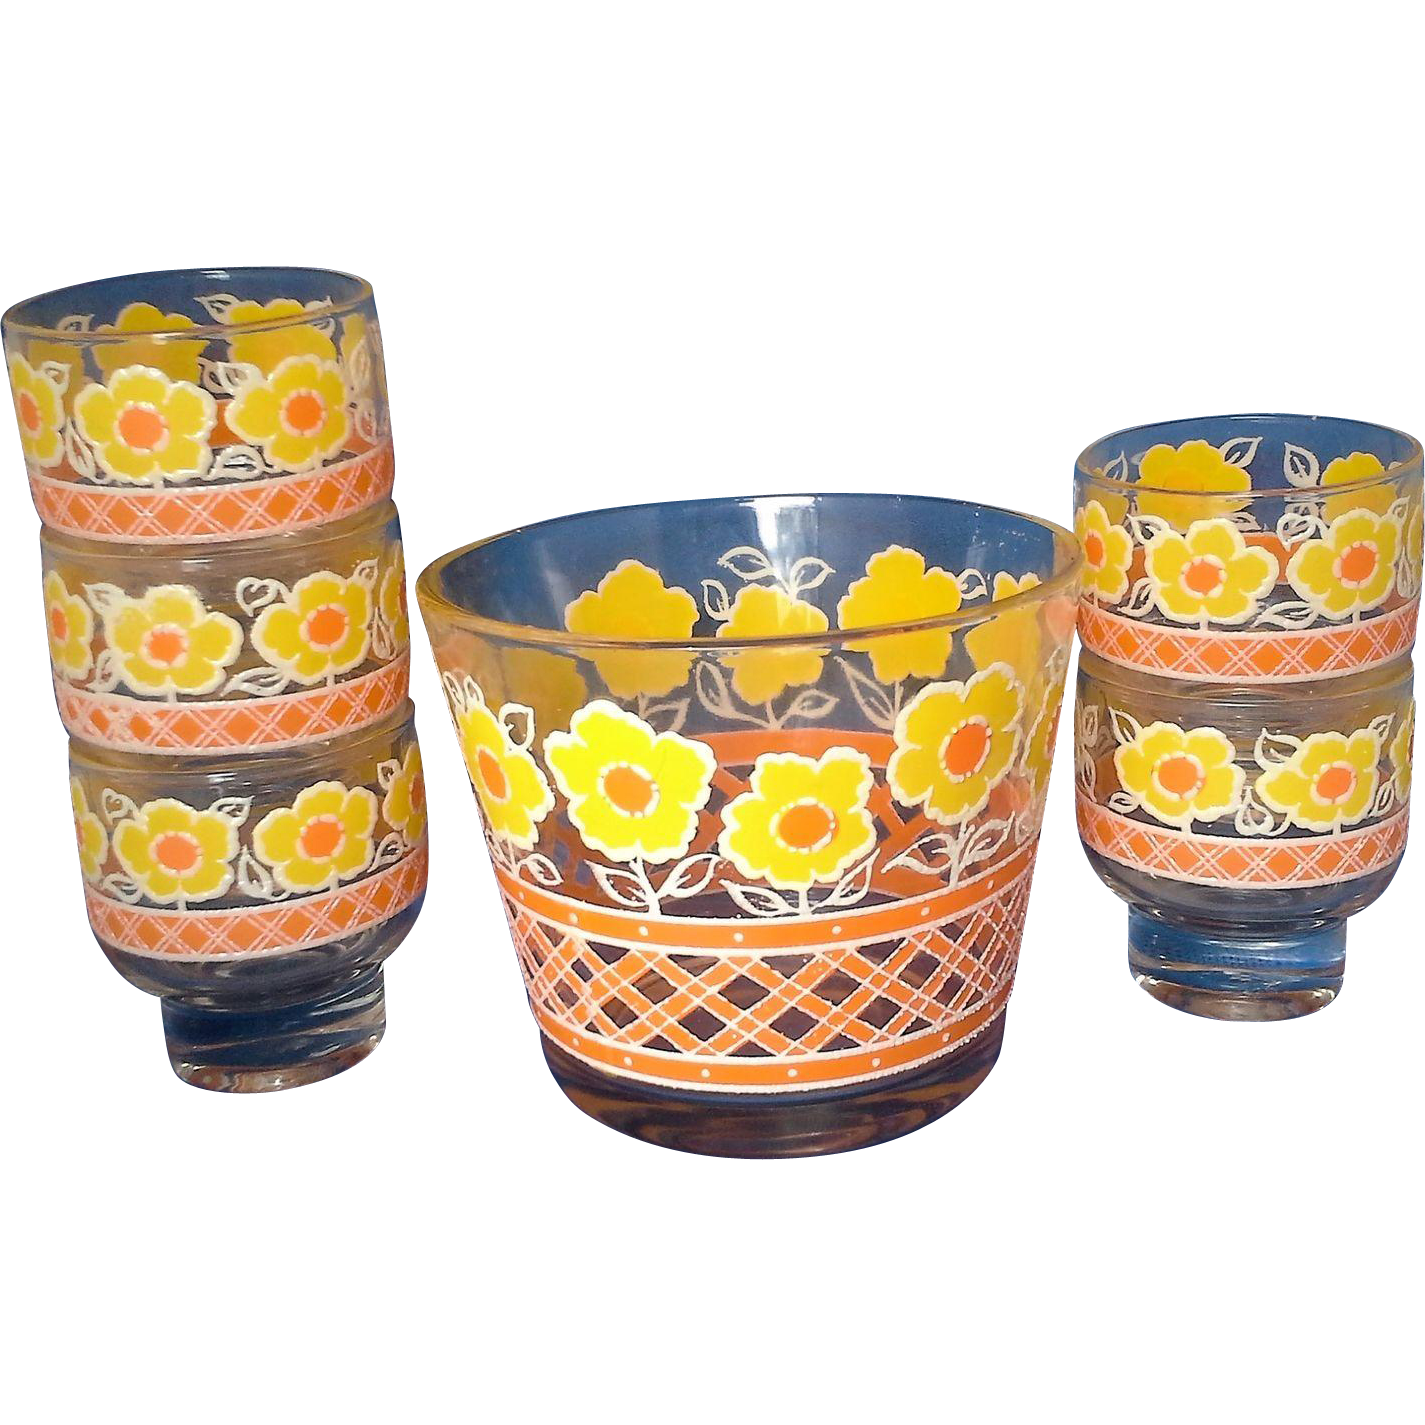 Daisy Yellow Orange Flowers Ice Bucket Tumblers Set 1980s